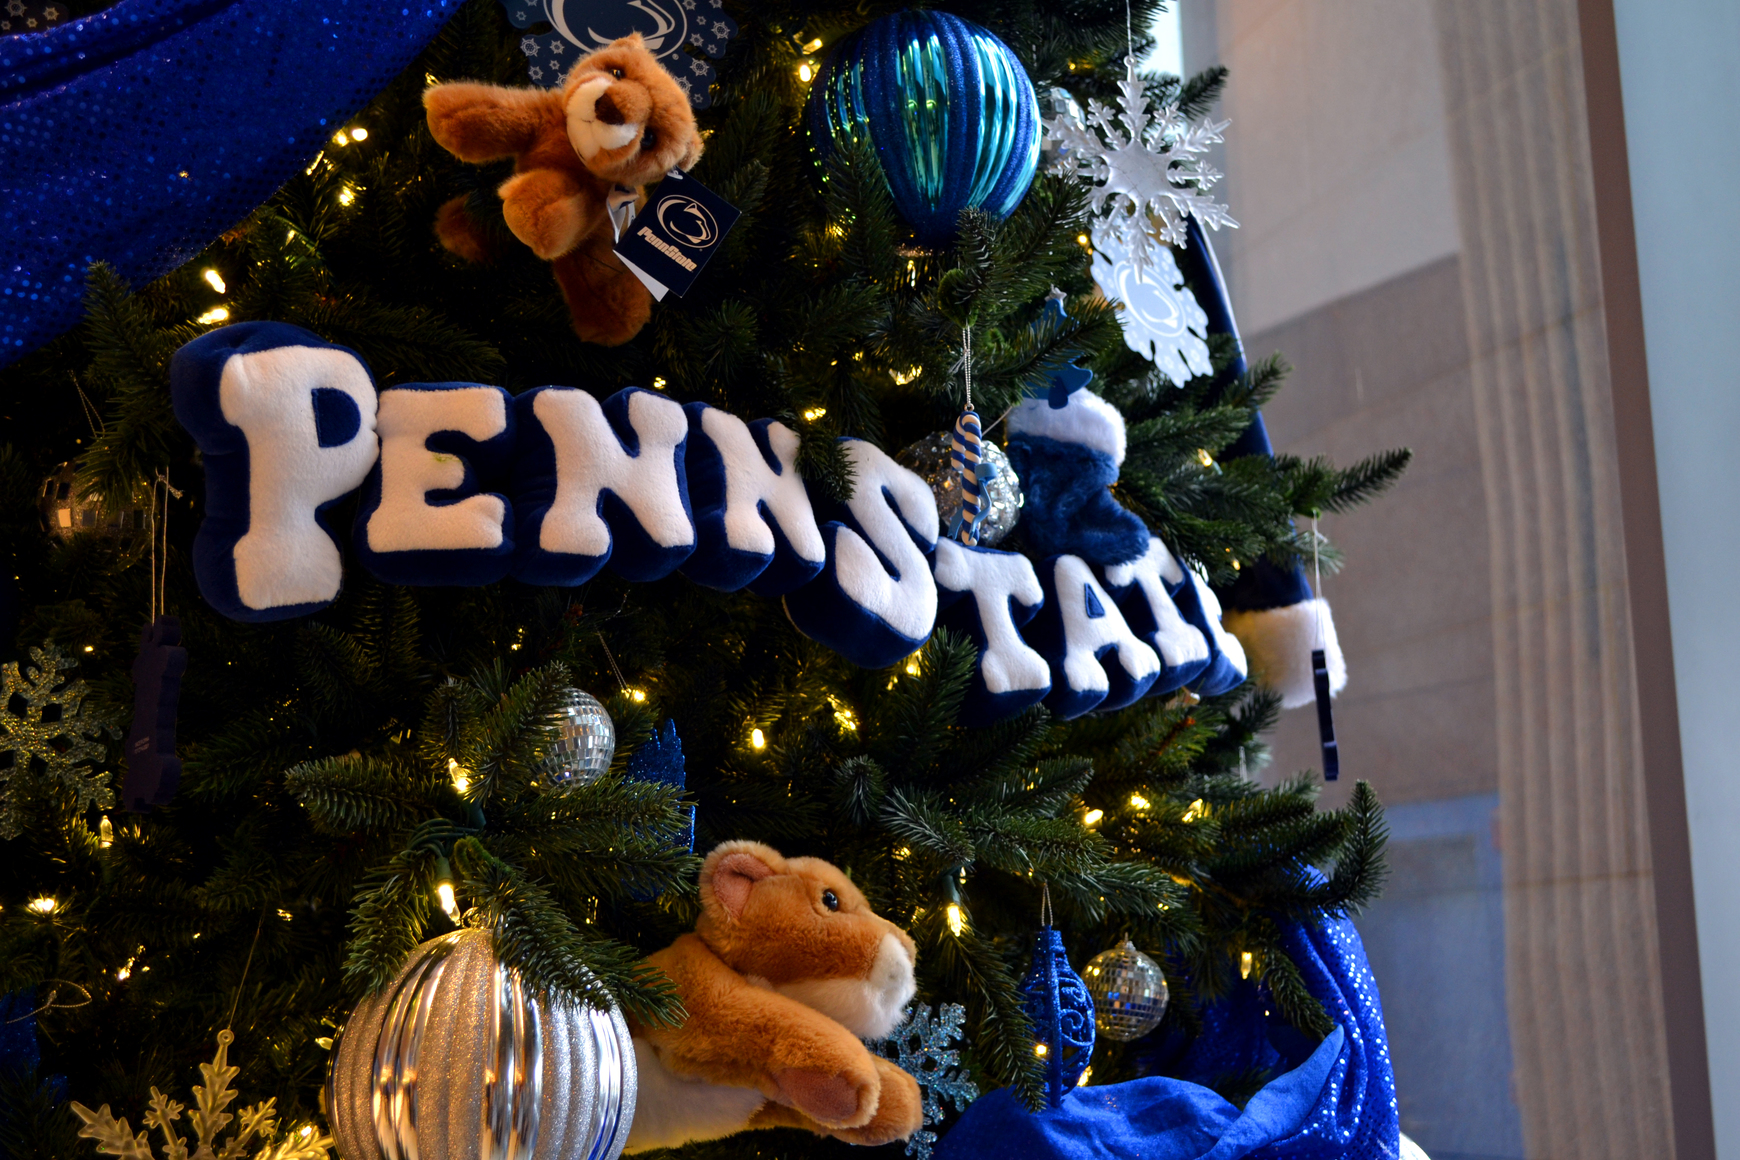 we want to see the best penn state holiday decorations